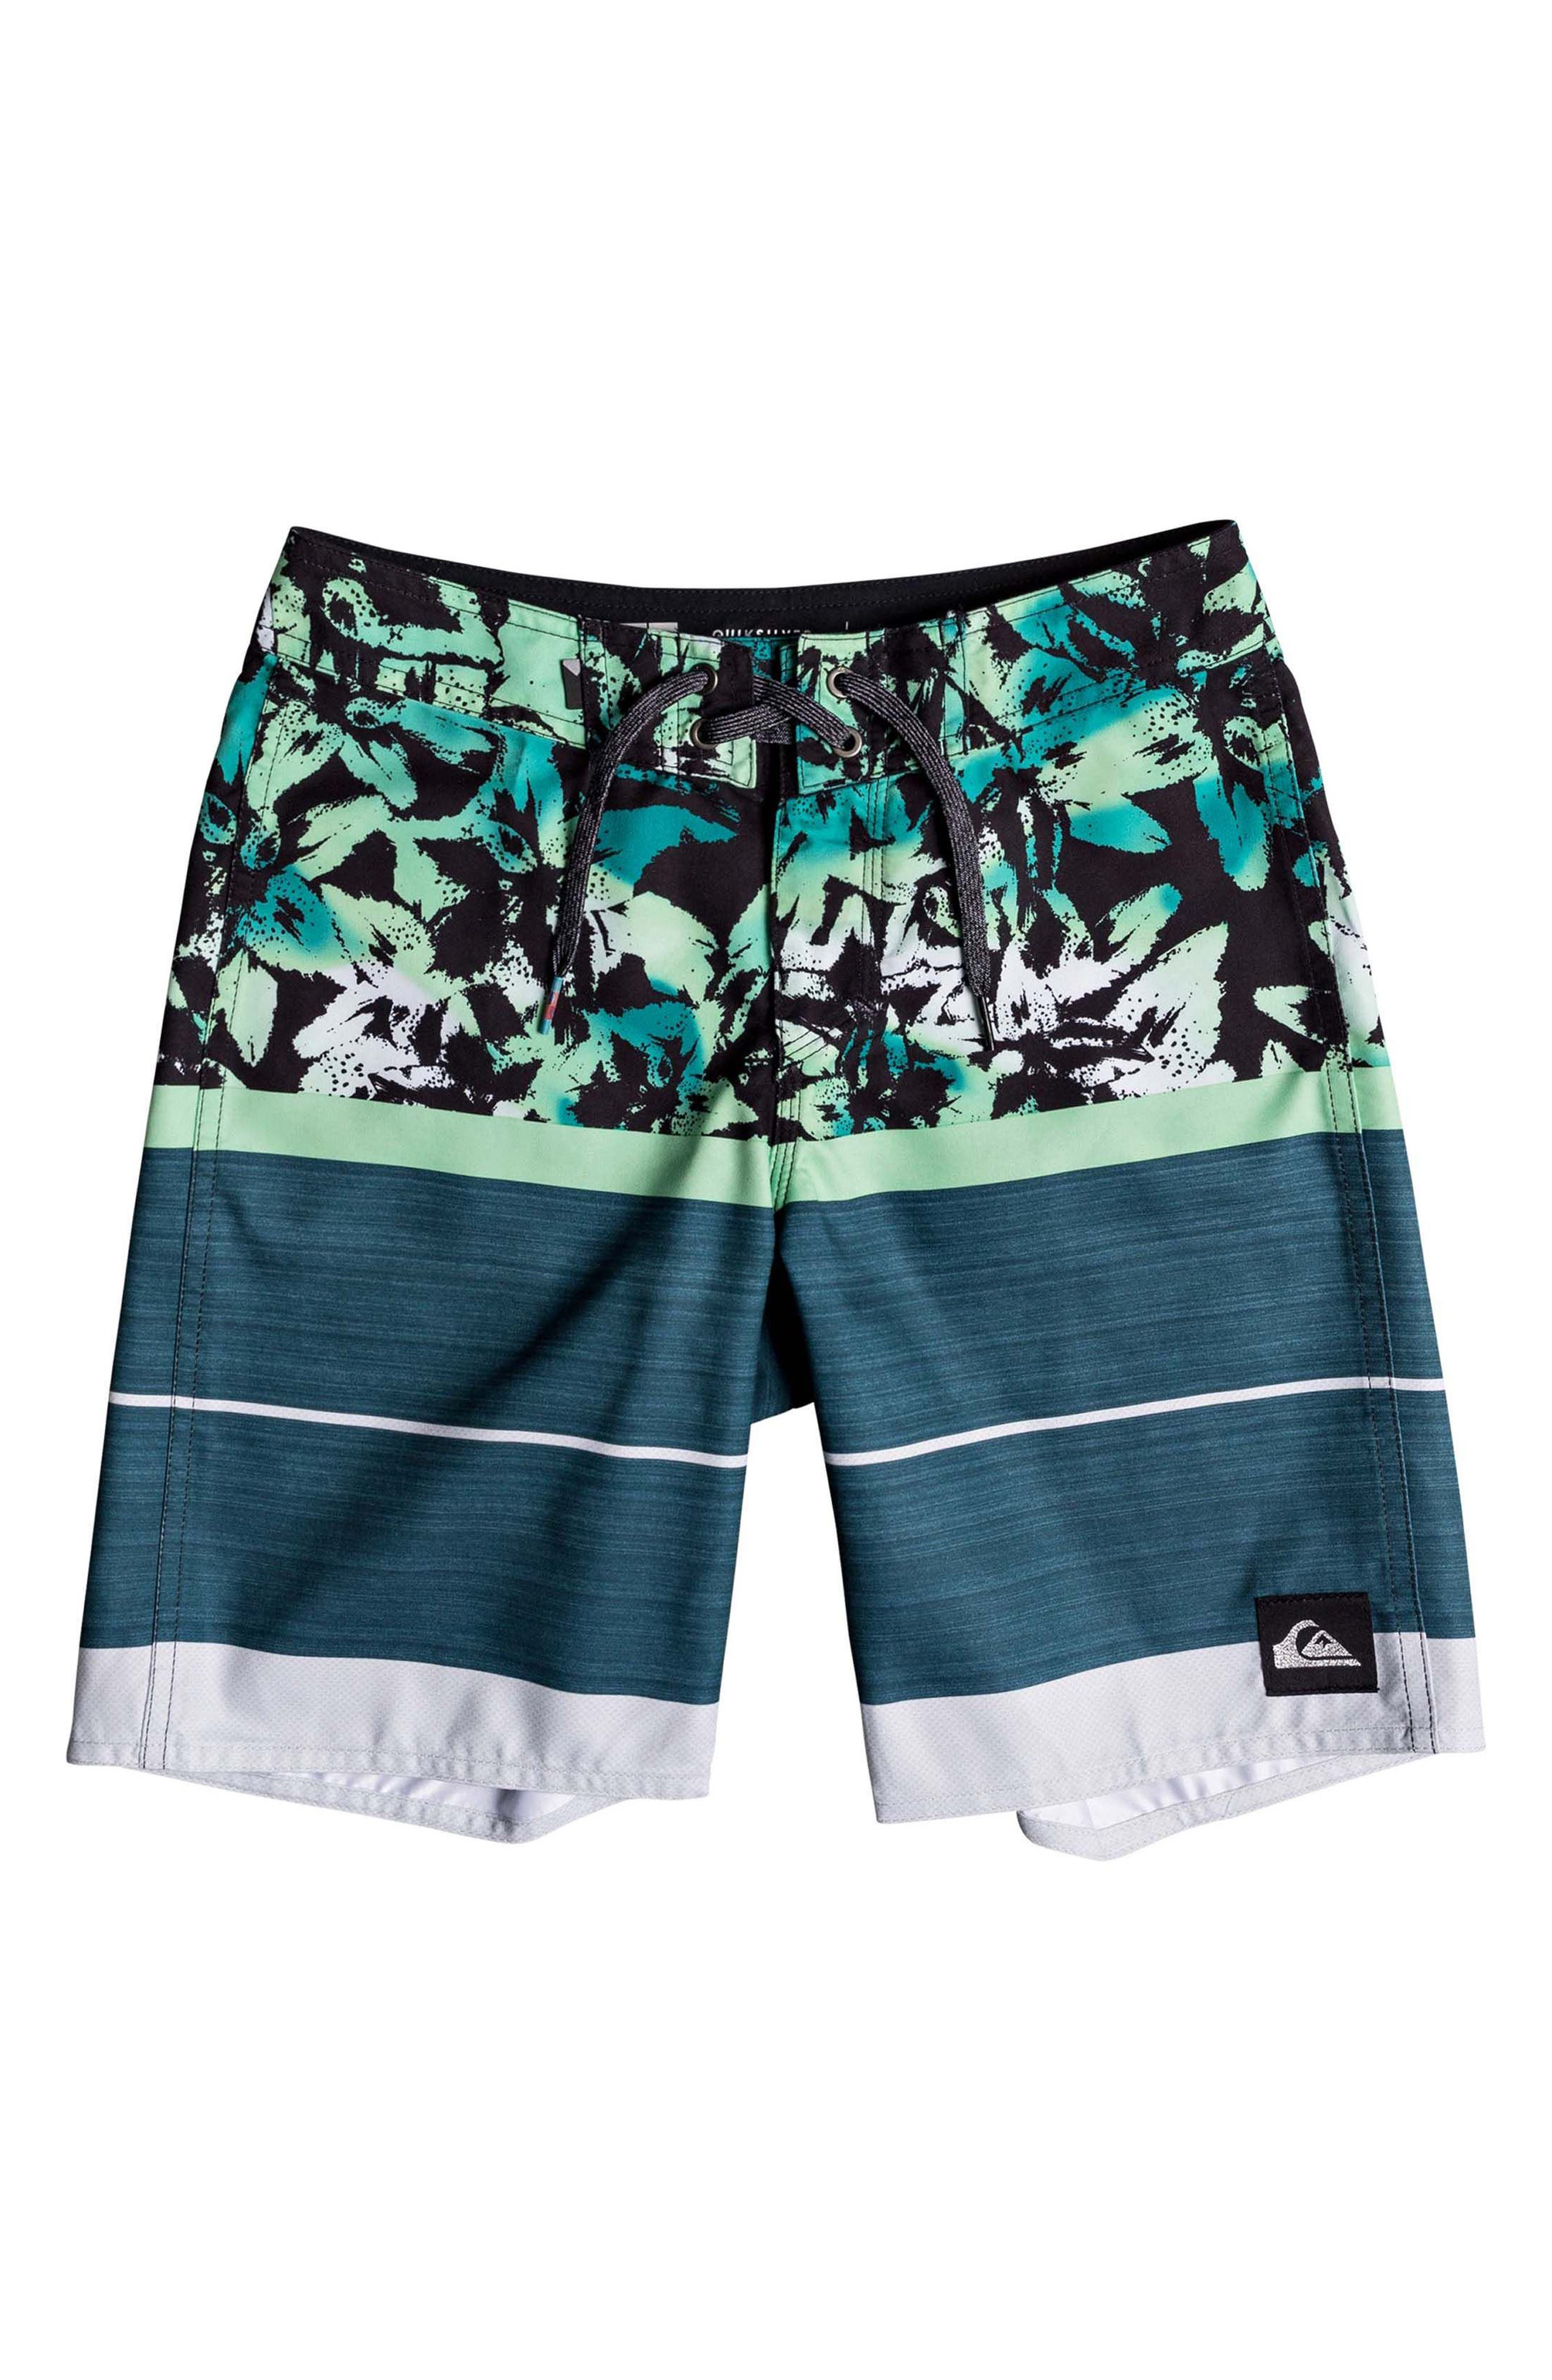 QUIKSILVER Slab Island Board Shorts, Main, color, 406